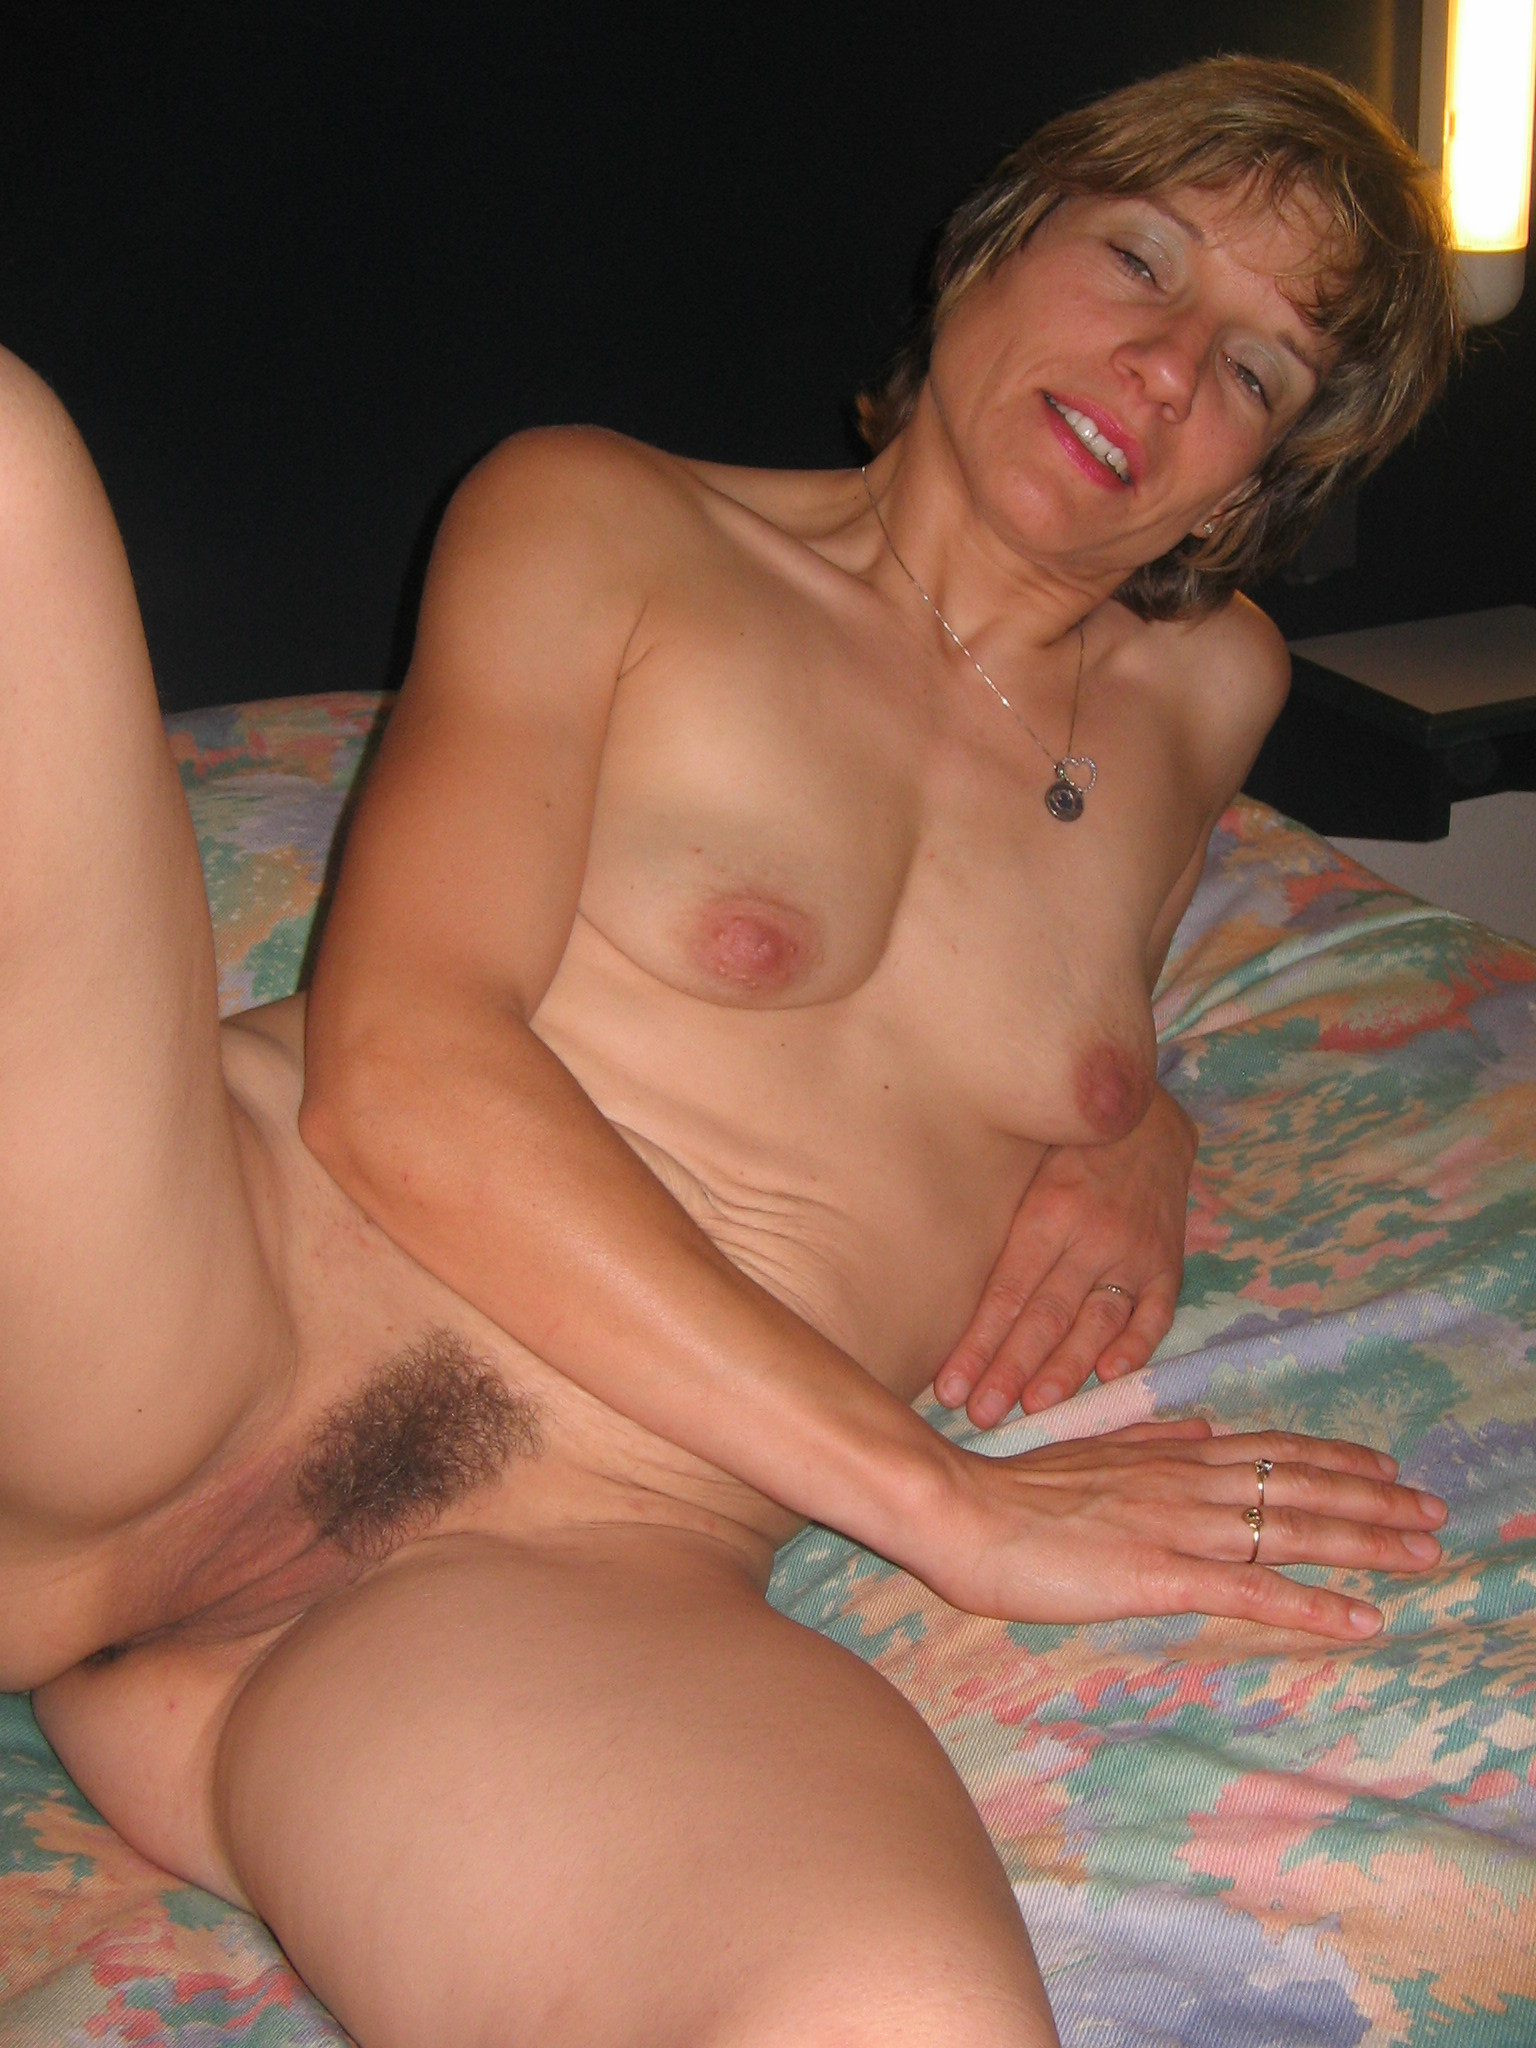 70 Year Old Granny Porn year old hairy granny igfap - 18 years old - www bigtities com